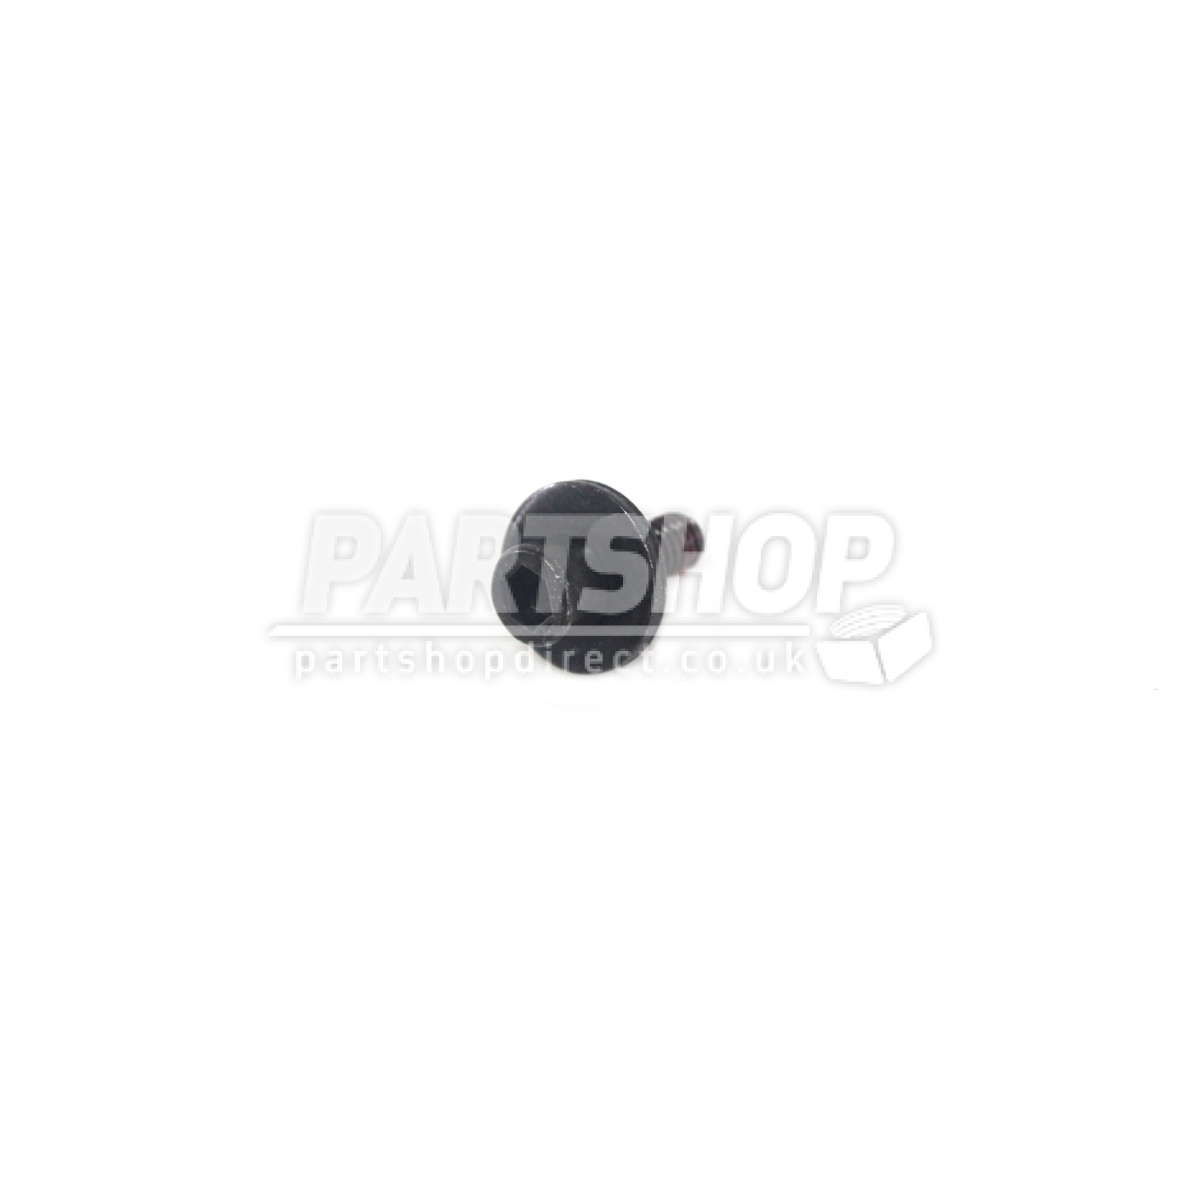 Paslode S H C S Sems 8 32 X 1 2 900594 Part Shop Direct